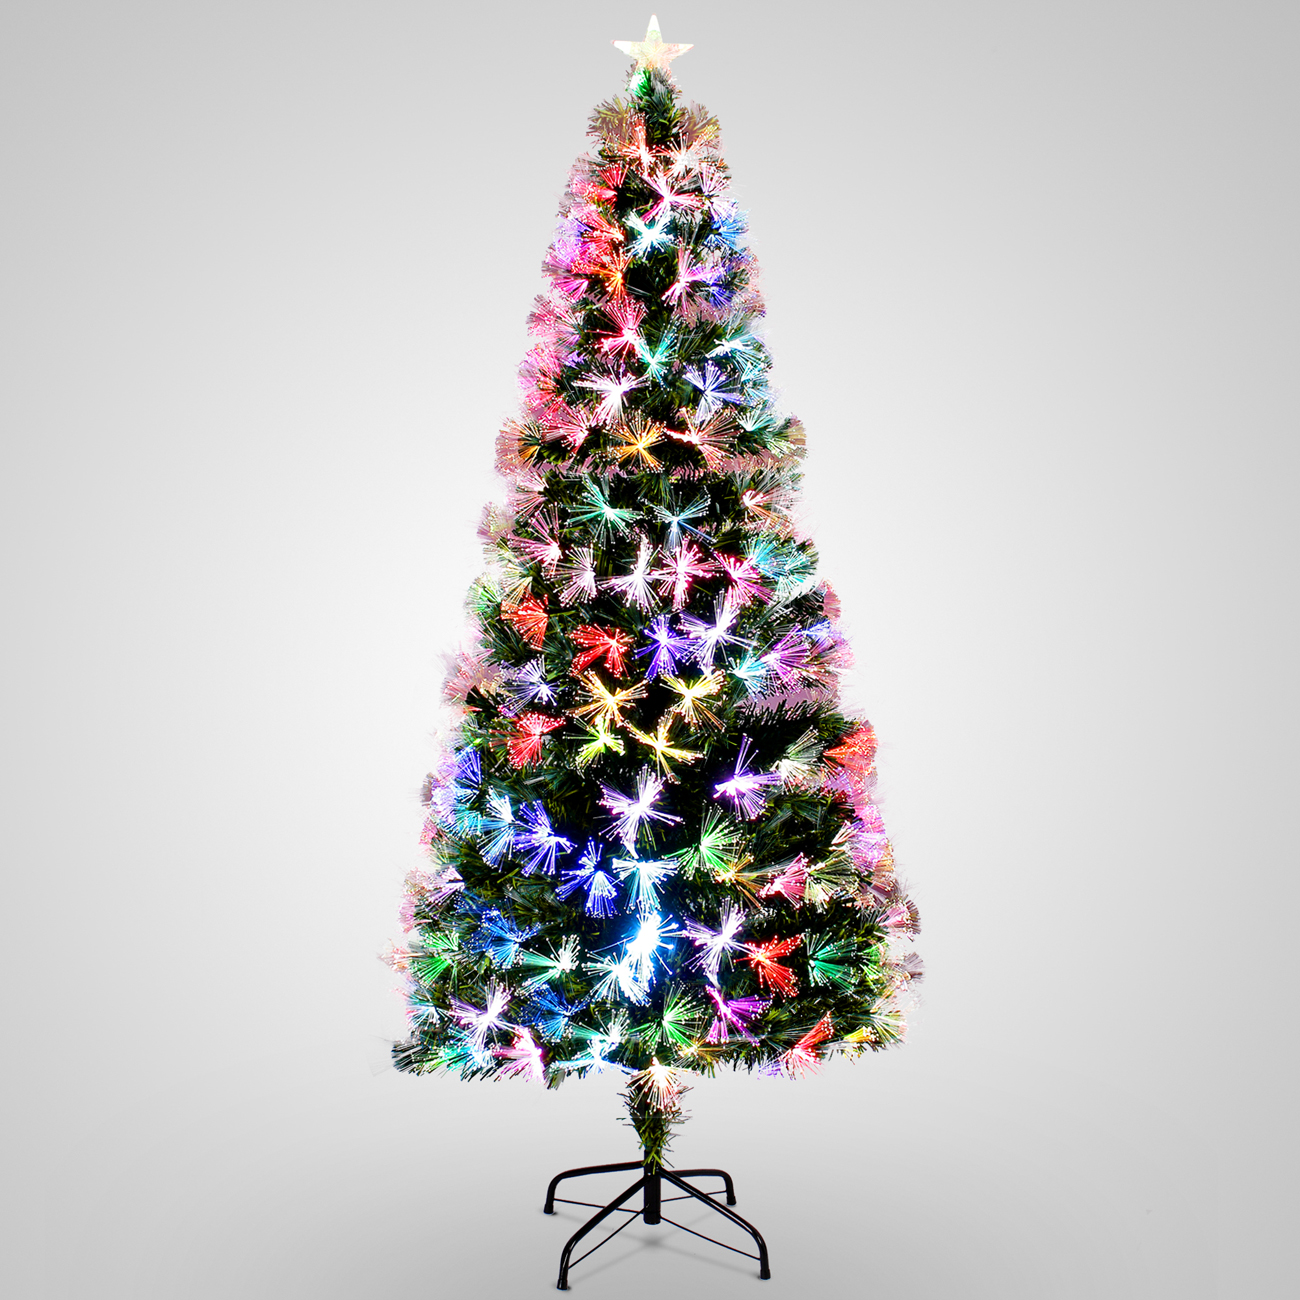 Artificial Christmas Tree Stand.Details About 7ft Pre Lit Fiber Optic Artificial Christmas Tree Snow Multicolor Lights Stand